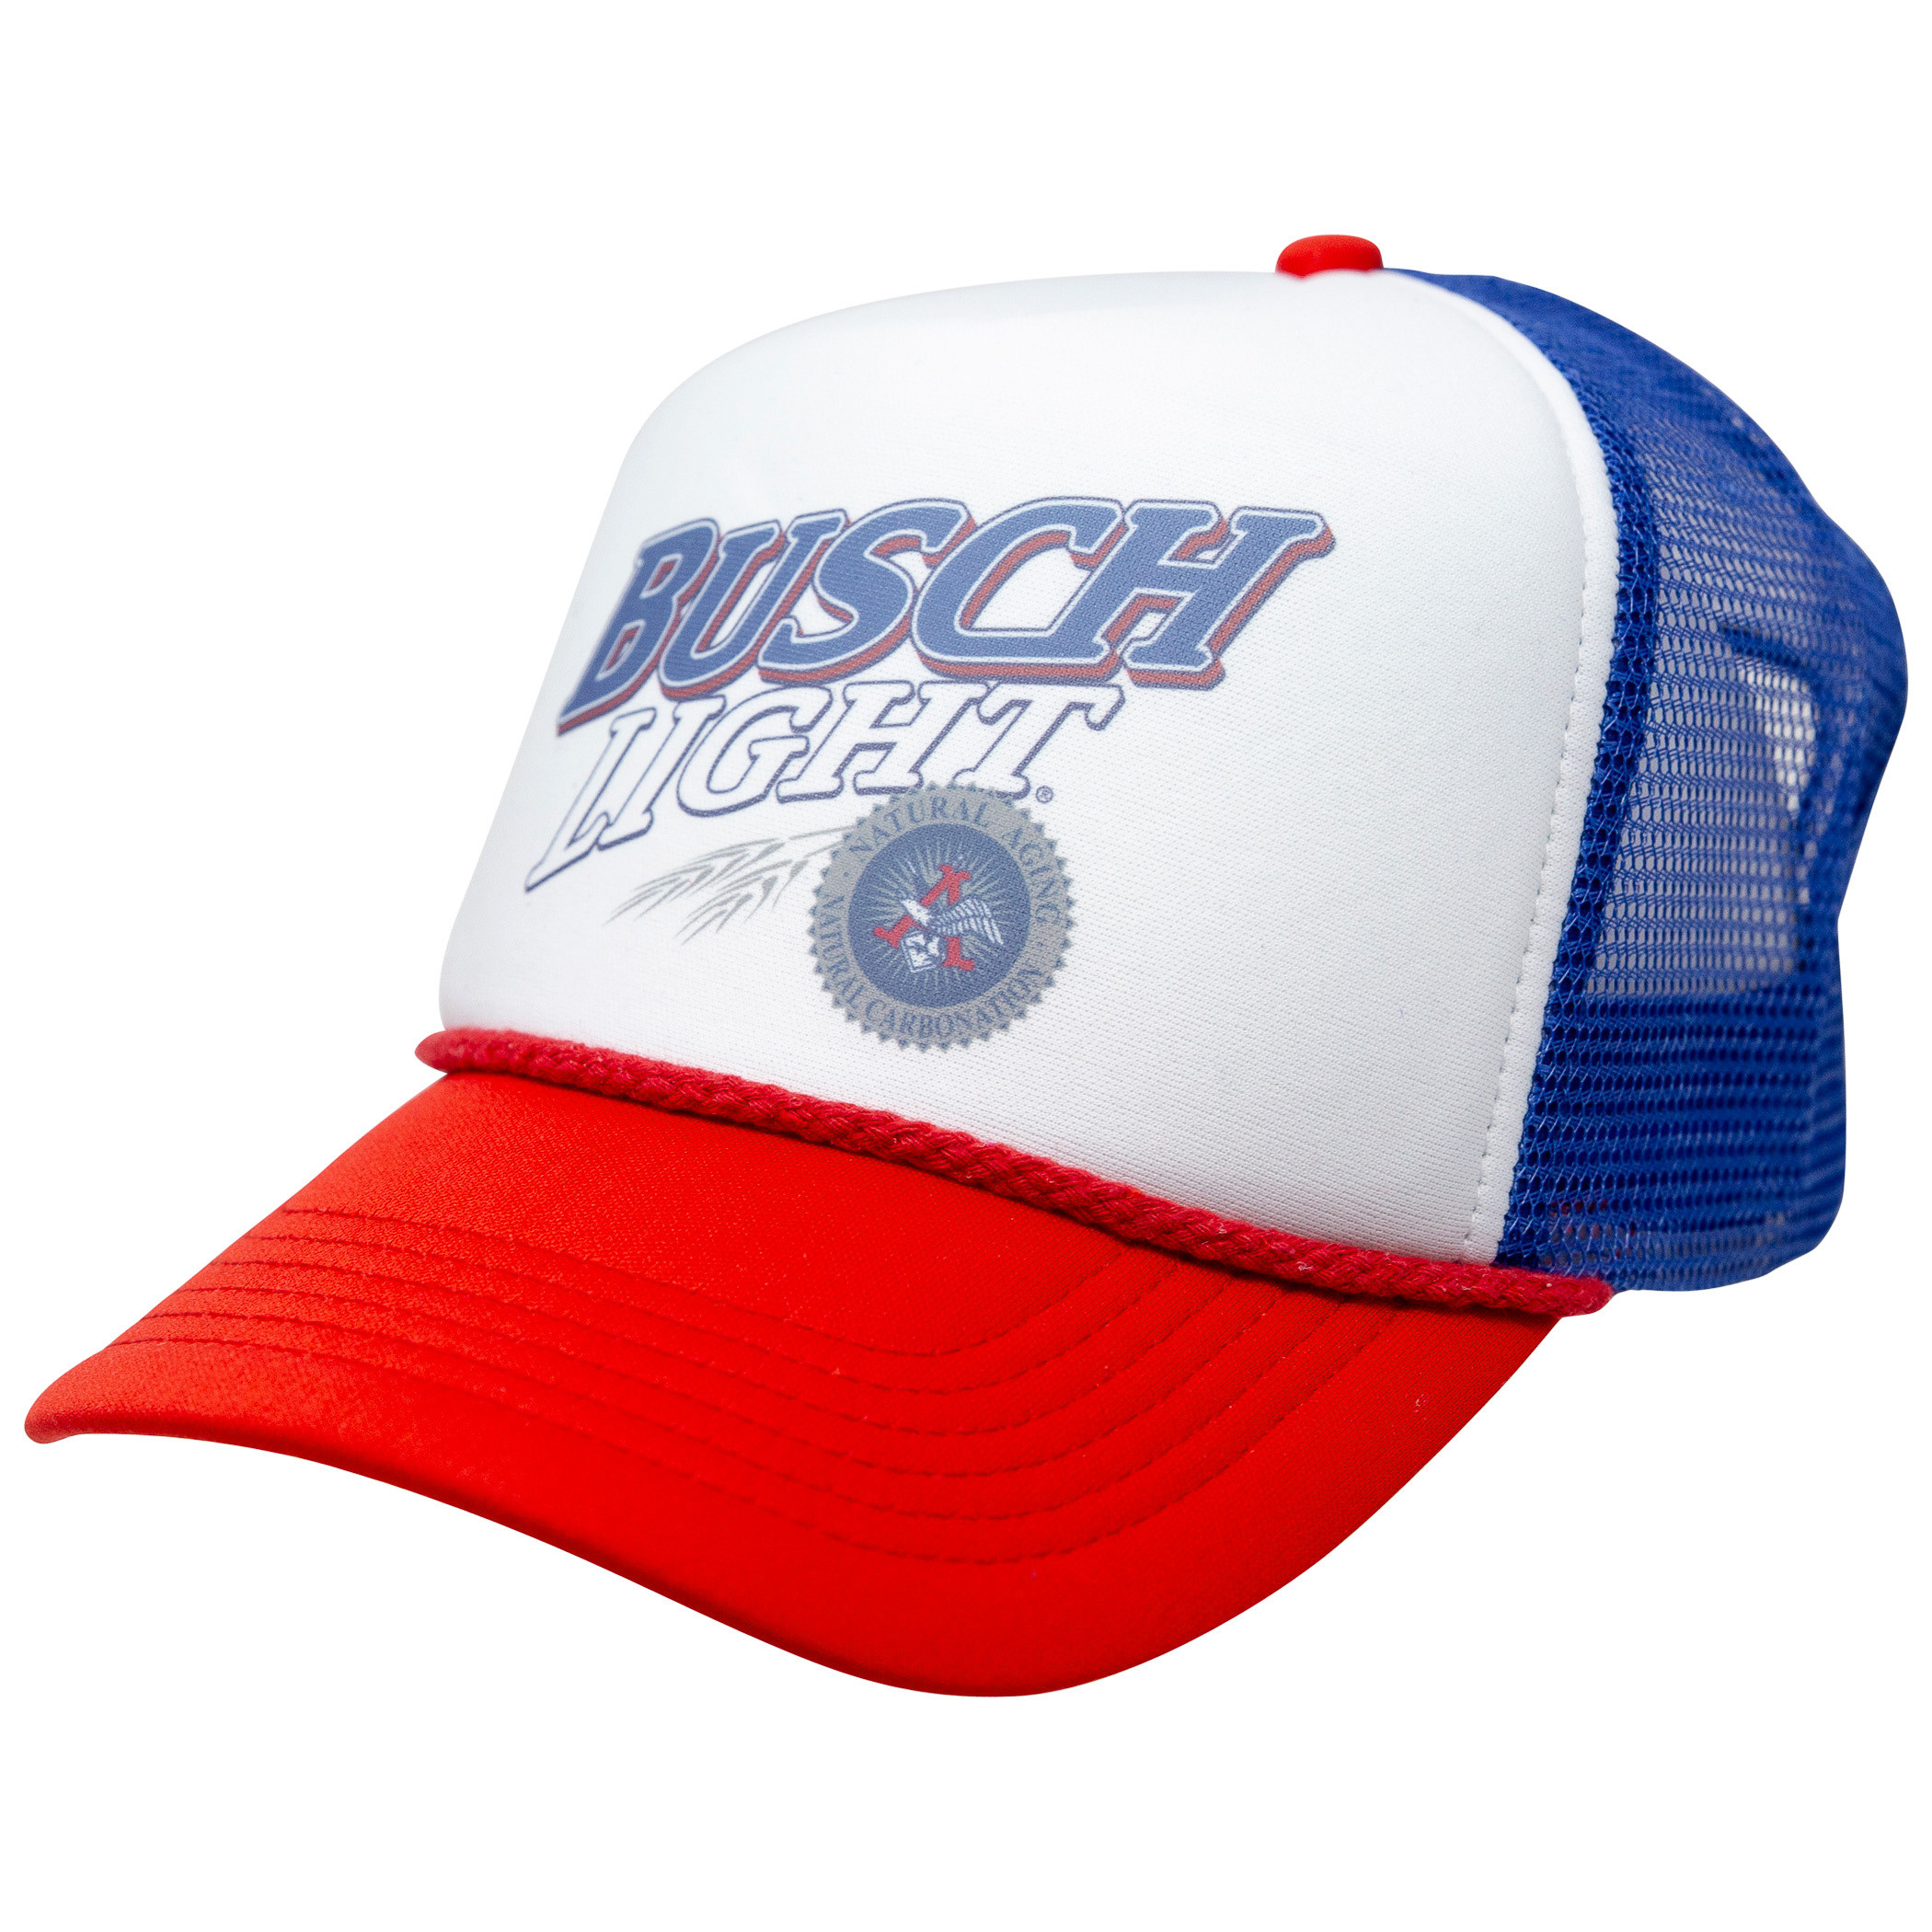 Busch Light Beer Logo Red, White, and Blue Adjustable Snapback Mesh Trucker Hat